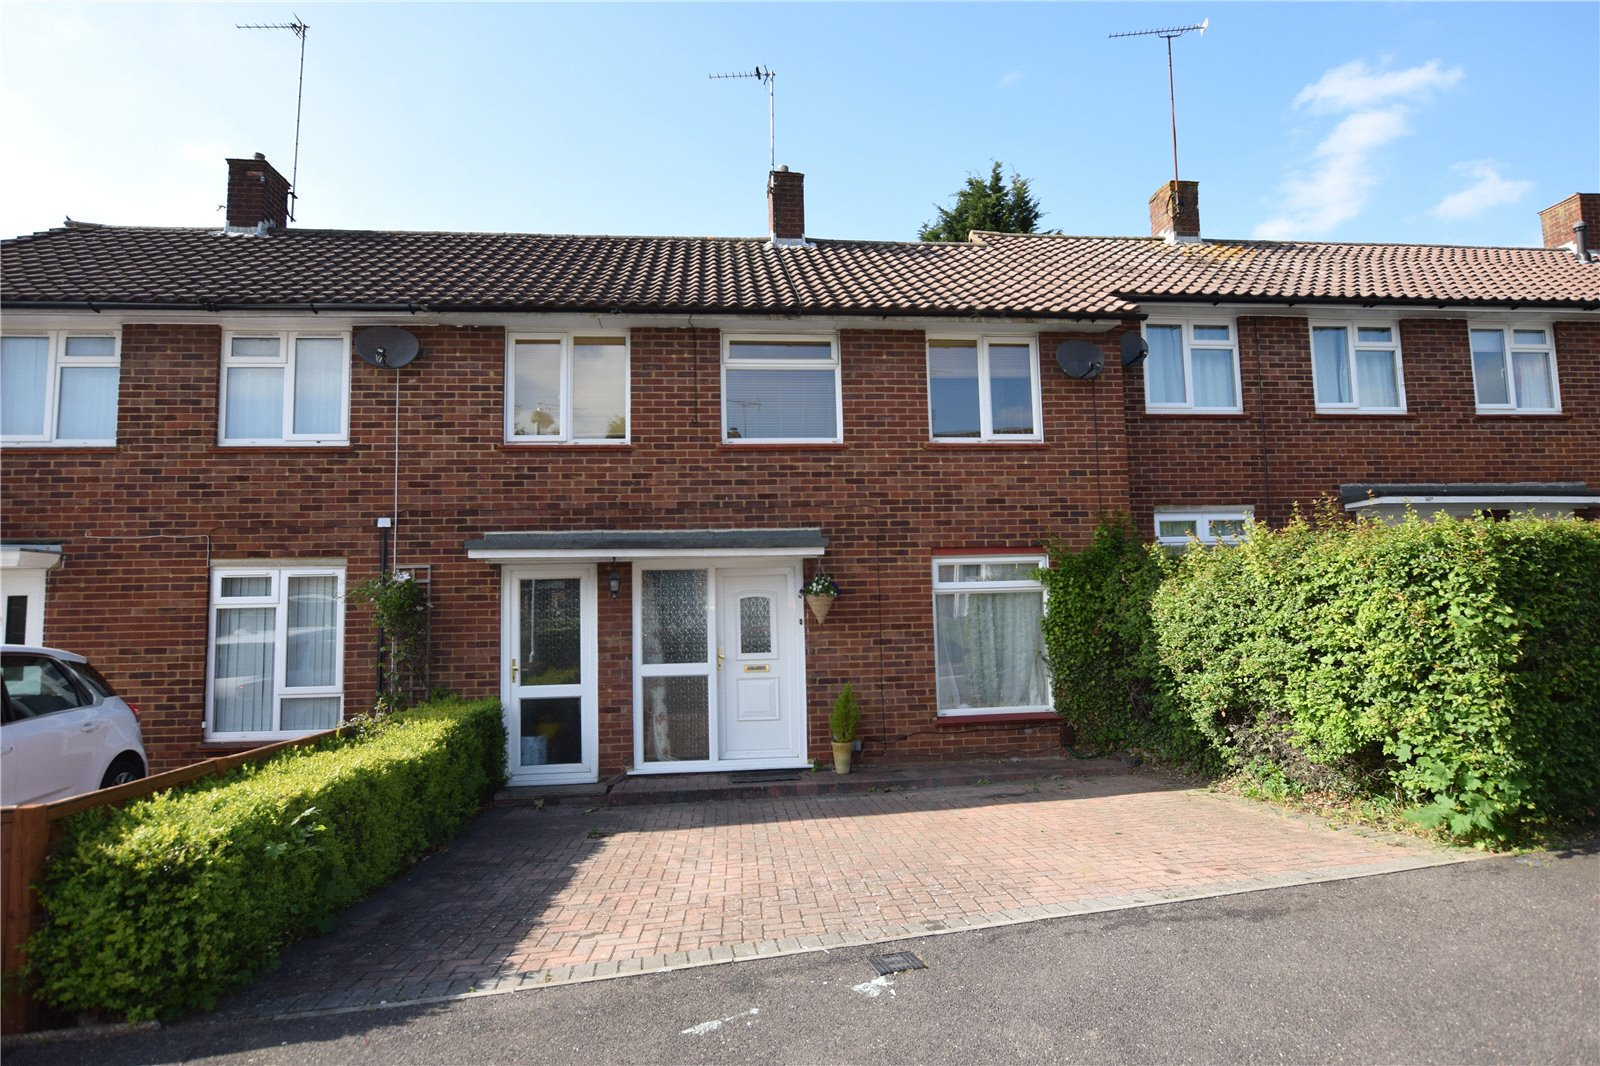 3 Bedrooms Terraced House for sale in Vincent Rise, Bracknell, Berkshire, RG12